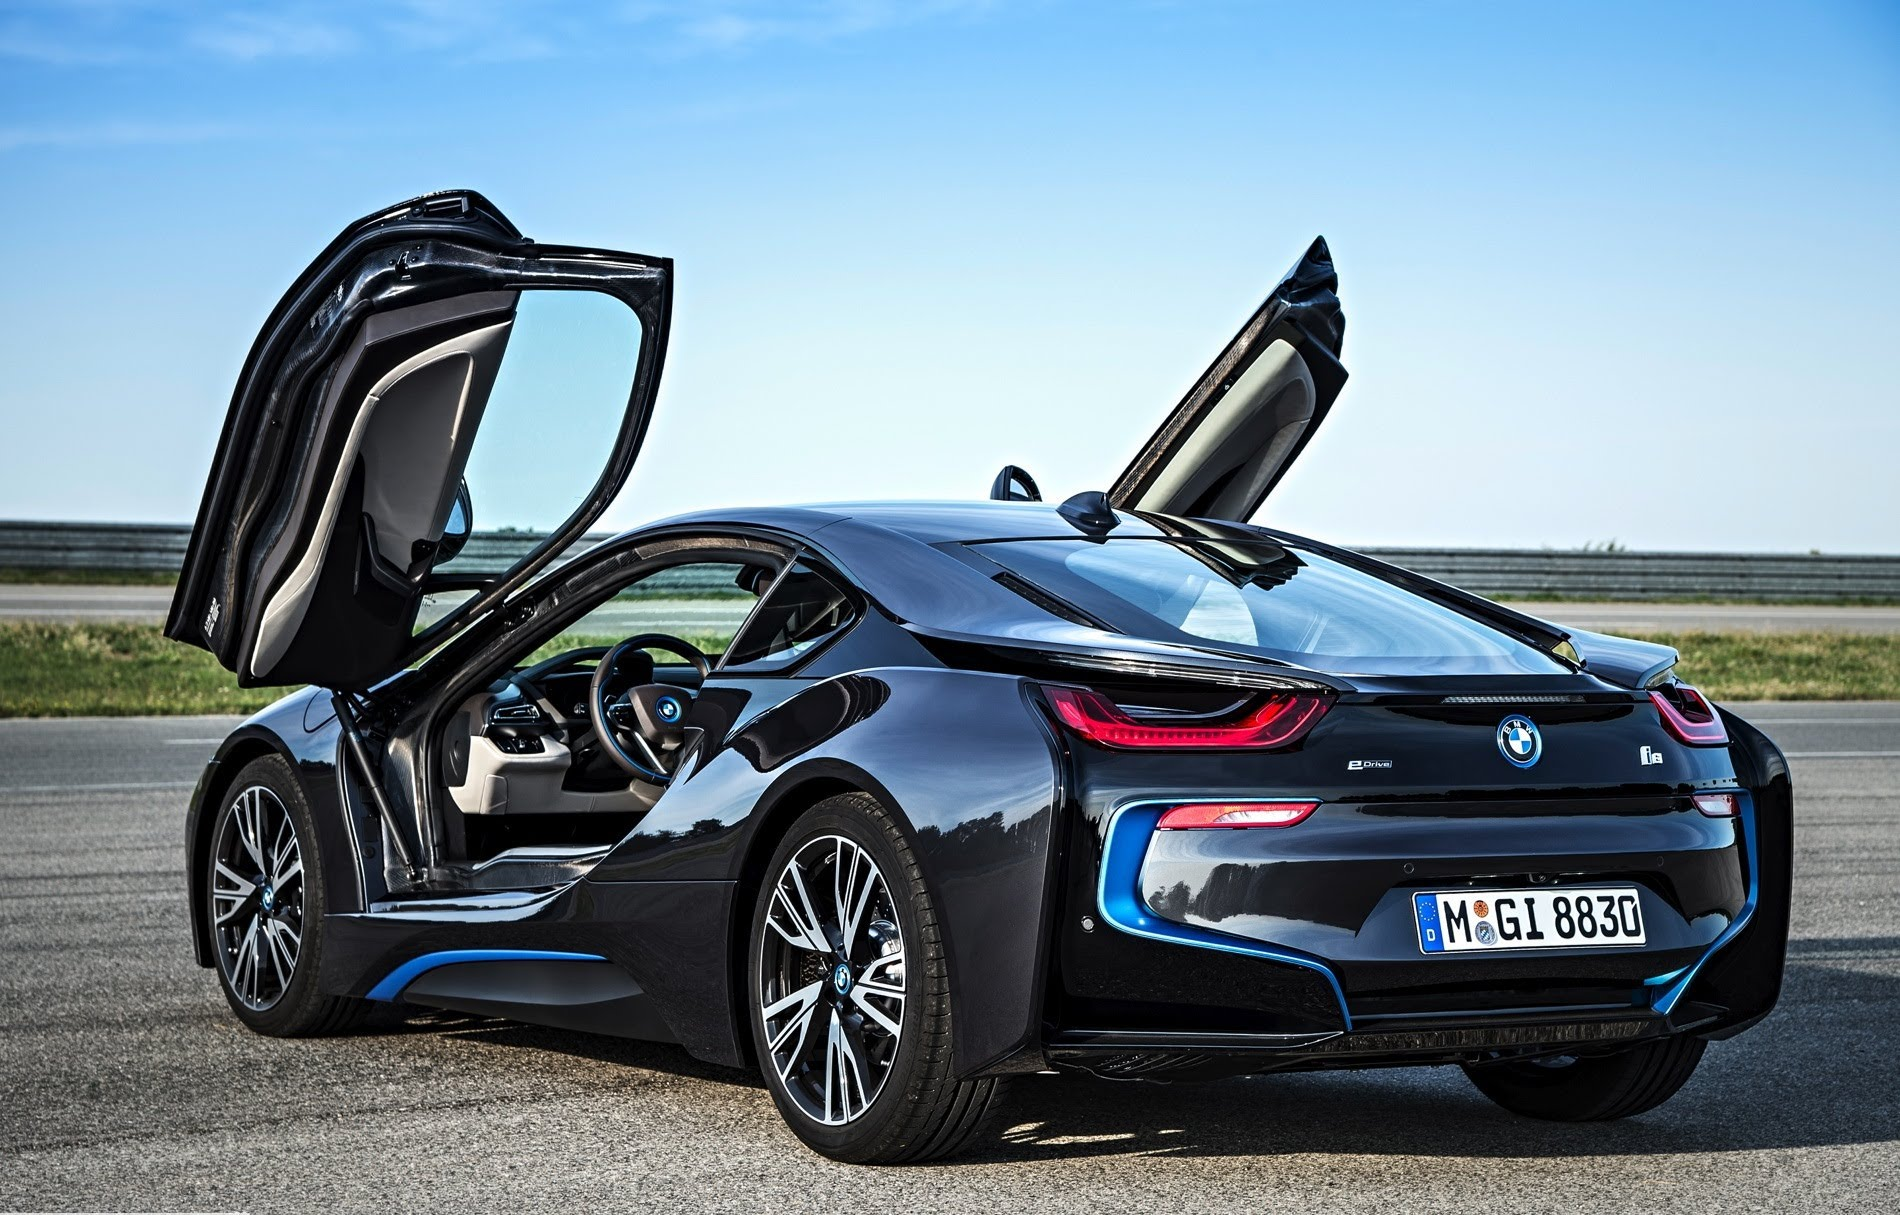 2014 bmw i8 automobile car review video. Black Bedroom Furniture Sets. Home Design Ideas